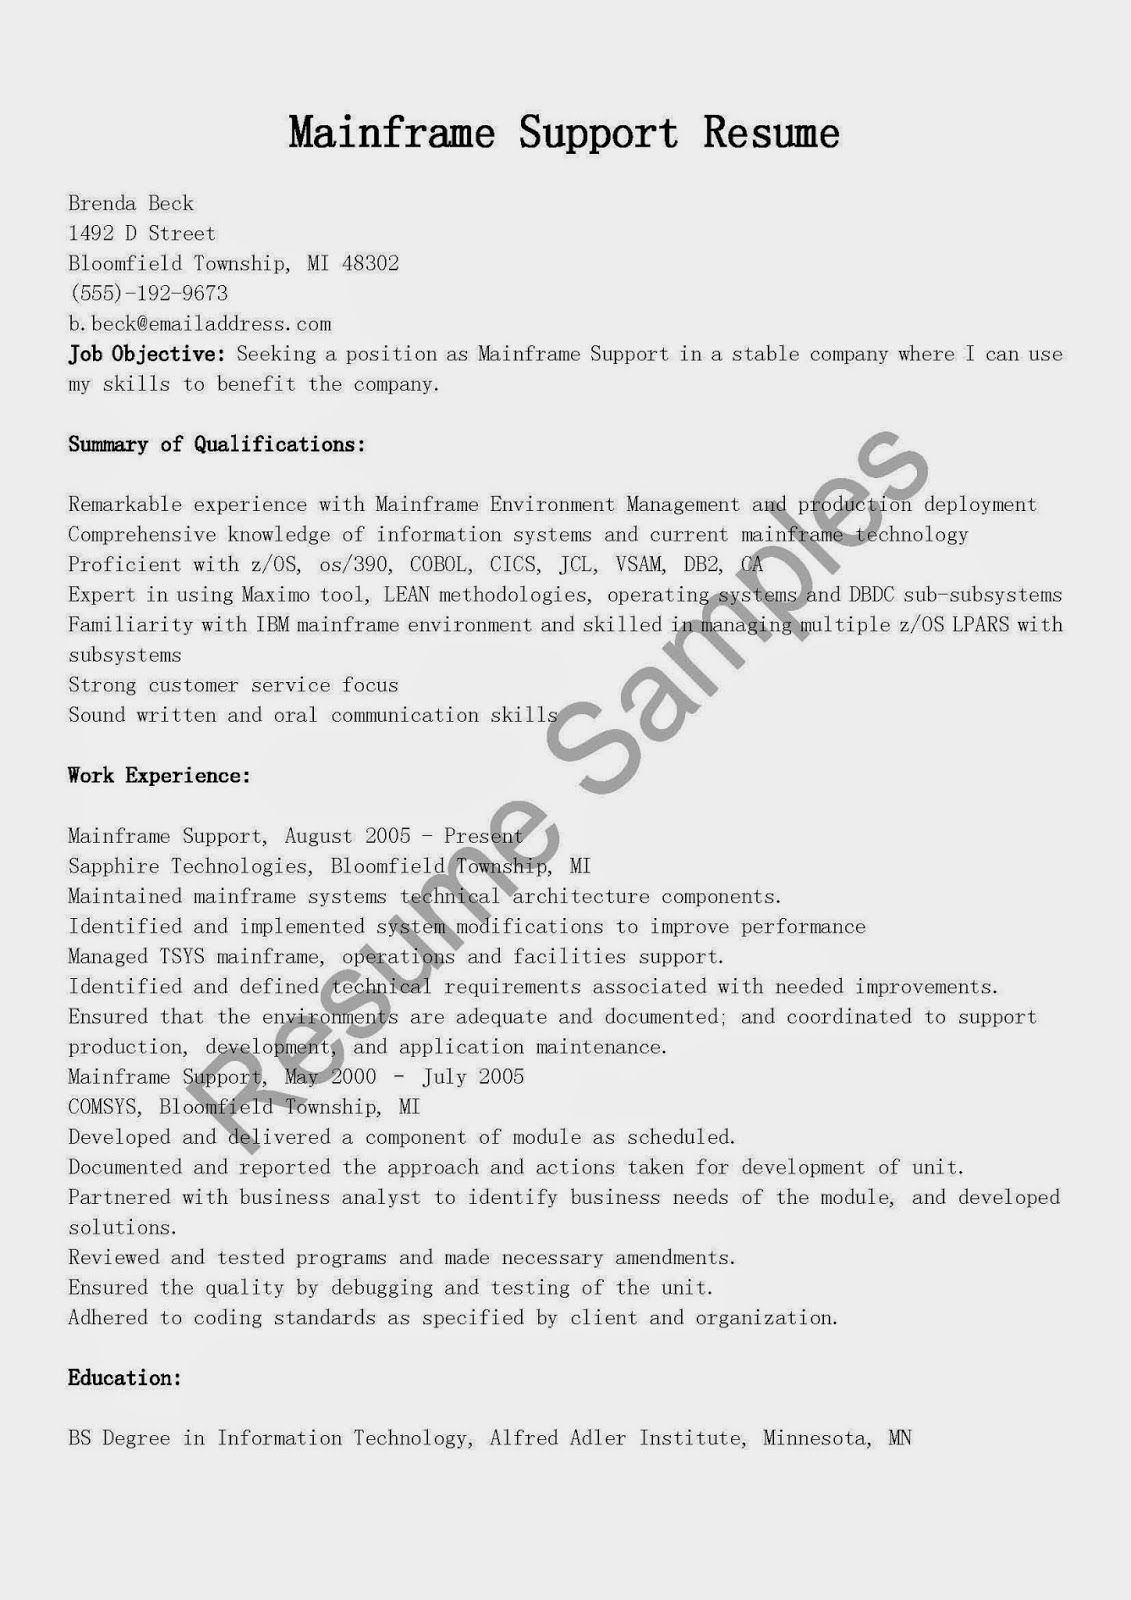 Mainframe Support Resume Sample | resume samples | Pinterest